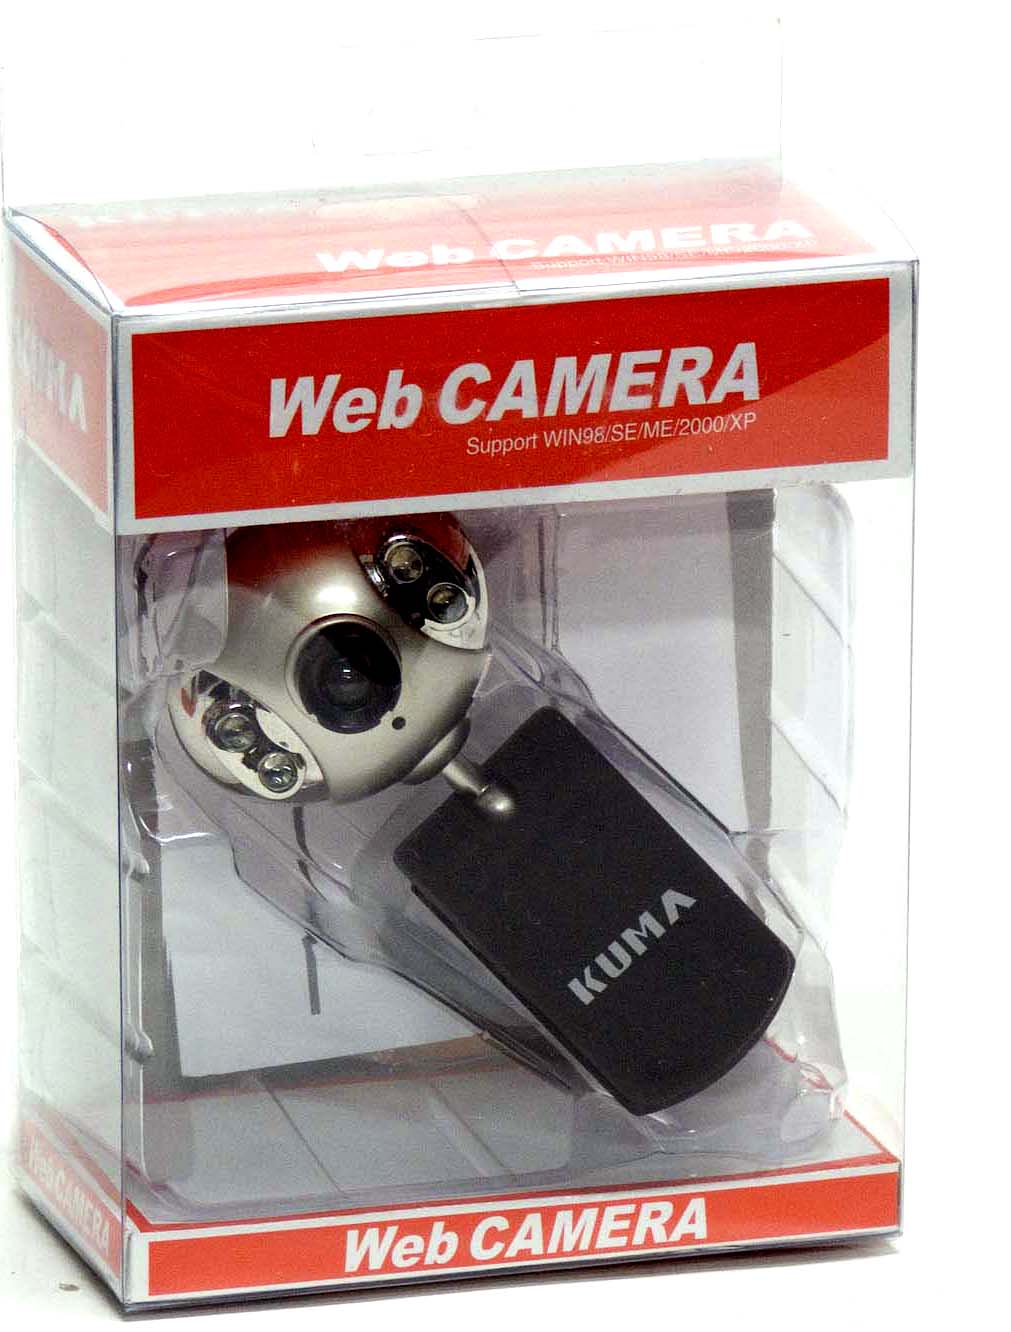 Kuma 'Clip-on' VGA Web-Camera - USB 2.0 Connection